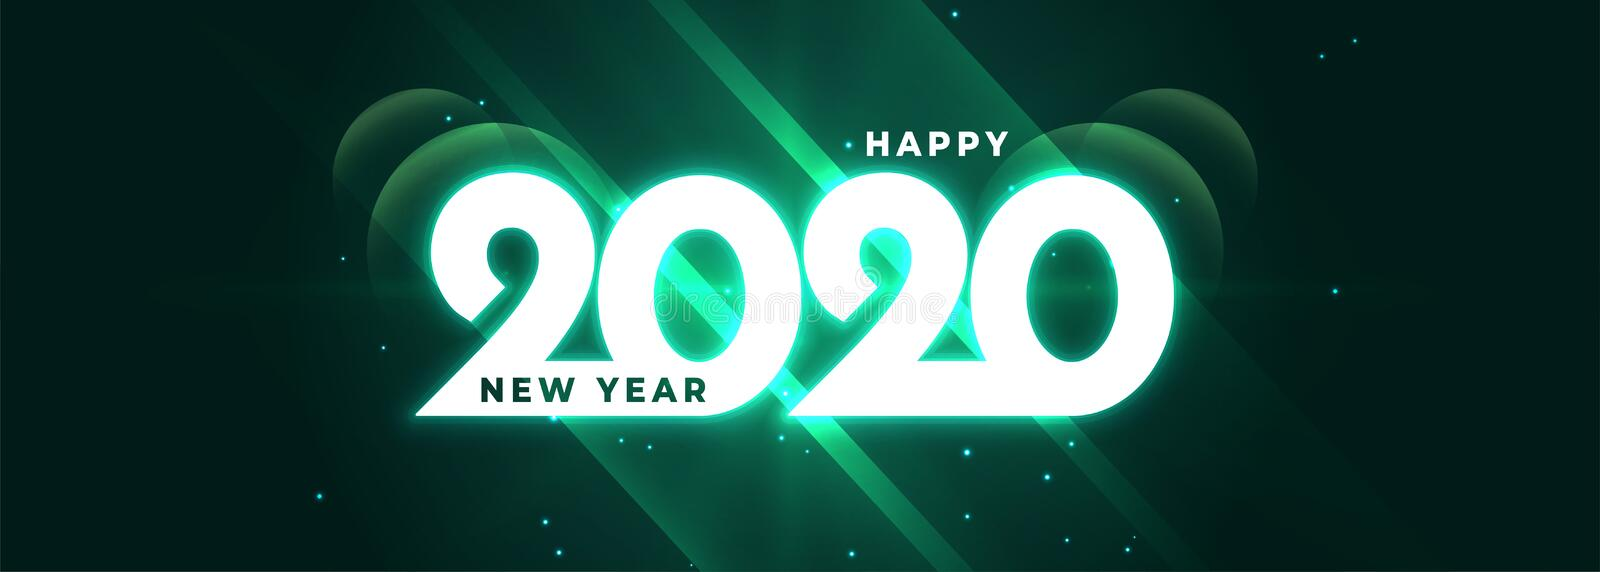 Glowing happy new year 2020 shiny banner design royalty free illustration